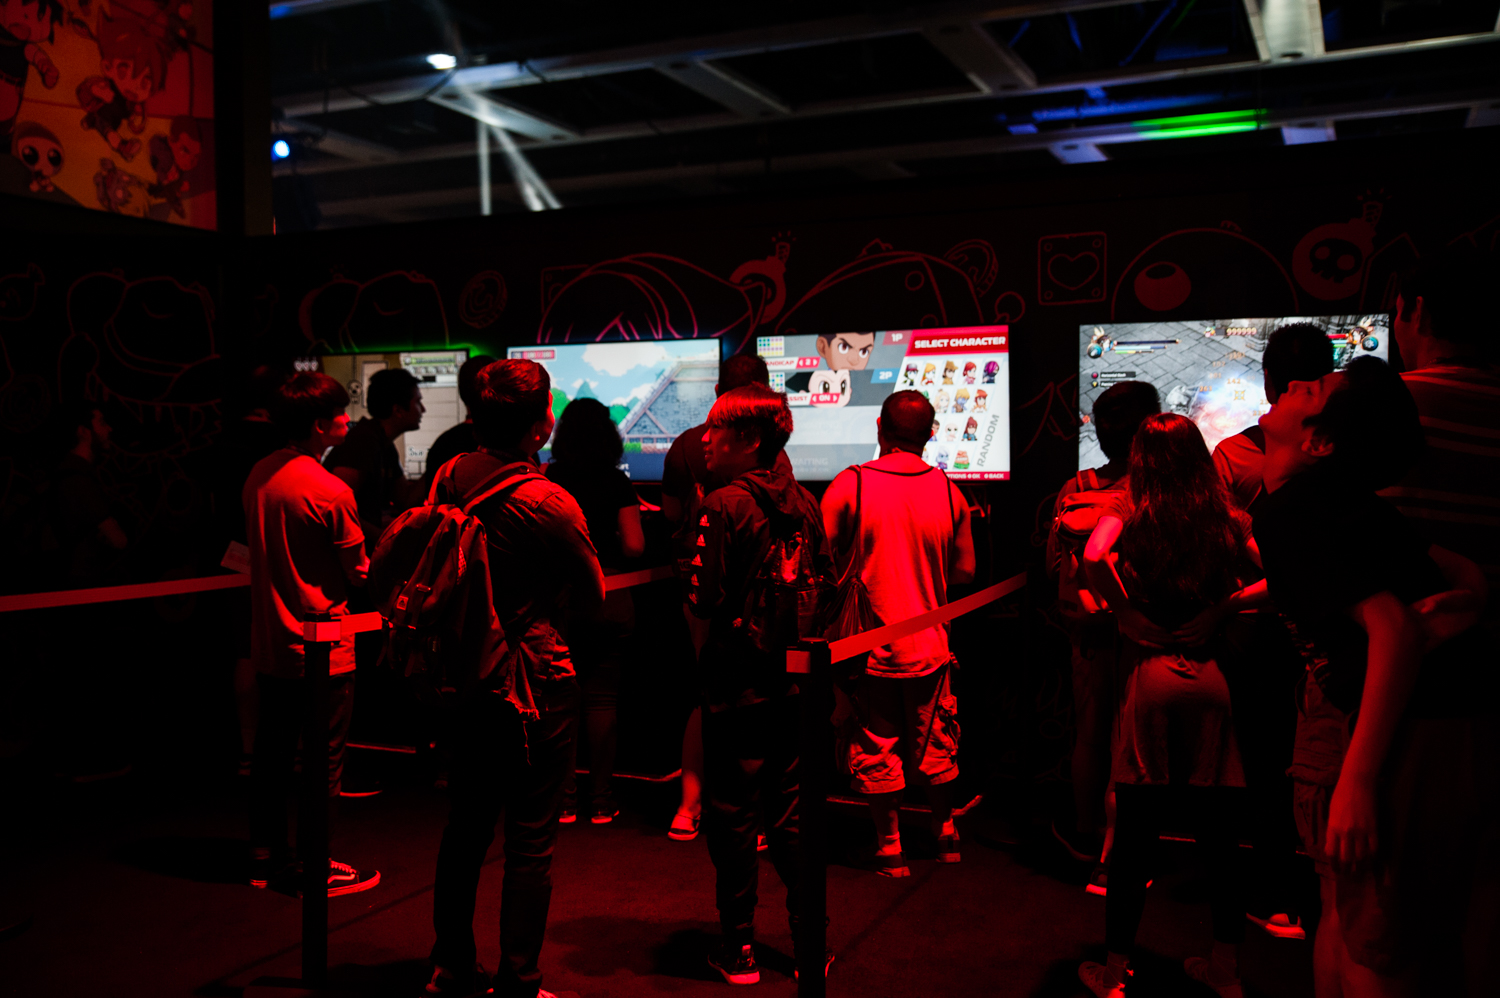 Seattle's Penny Arcade Expo (PAX West) brings tens of thousands of people to the Washington State Convention Center every year! PAX West includes concerts, arcade games, video game tournaments, cosplay and more - and runs the entirety of Labor Day Weekend (Aug. 30 – Sept.2). (Image: Elizabeth Crook / Seattle Refined)